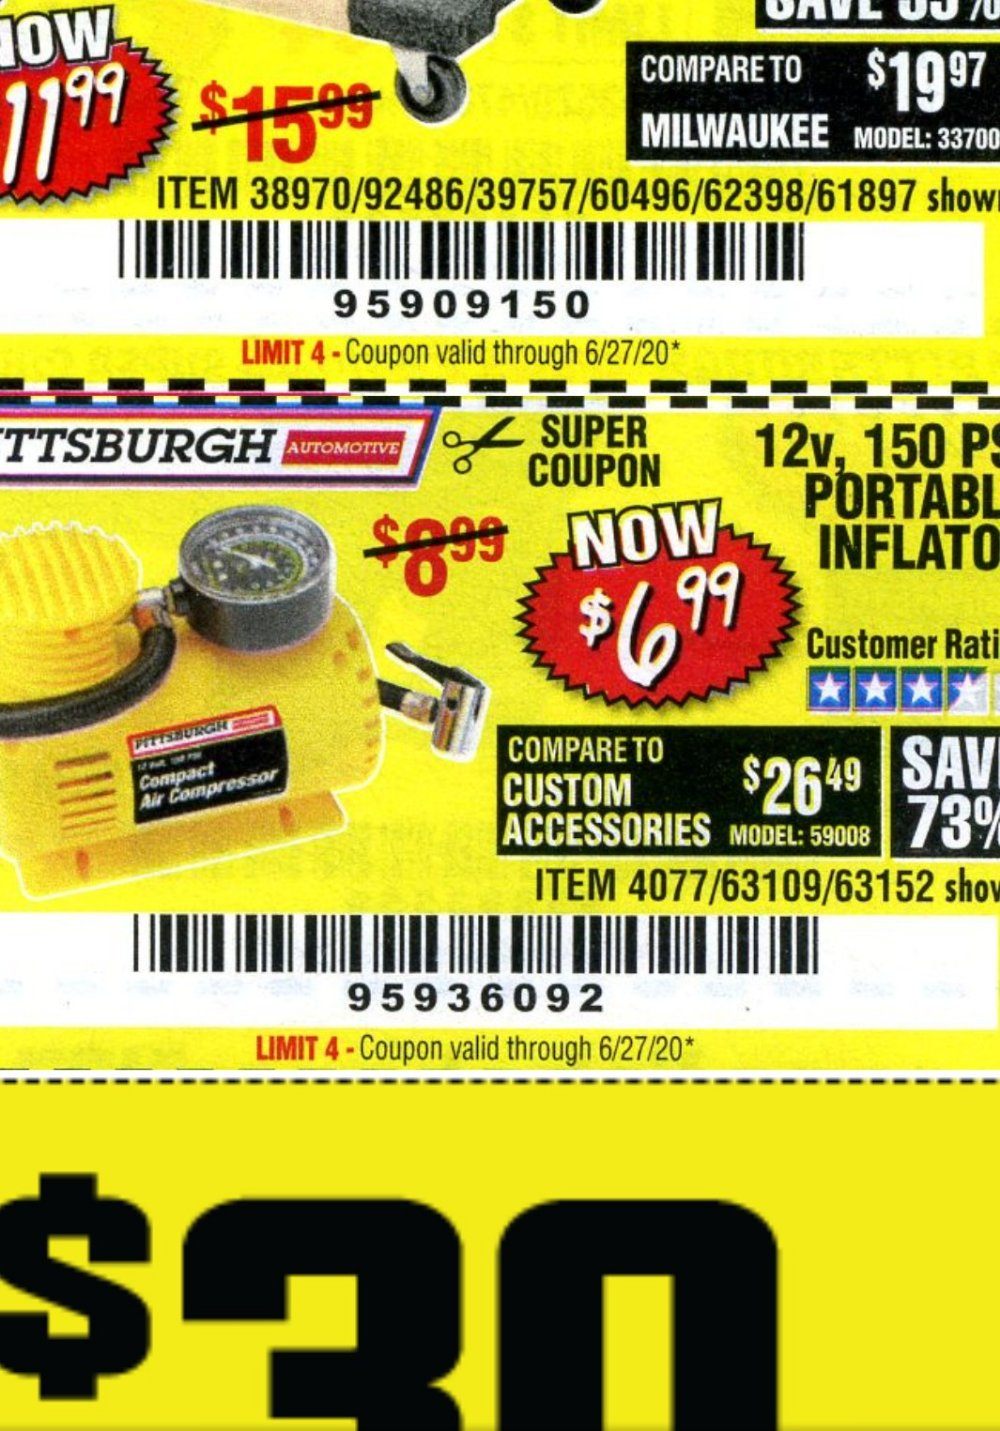 Harbor Freight Coupon, HF Coupons - 12 Volt, 150 Psi Portable Inflator